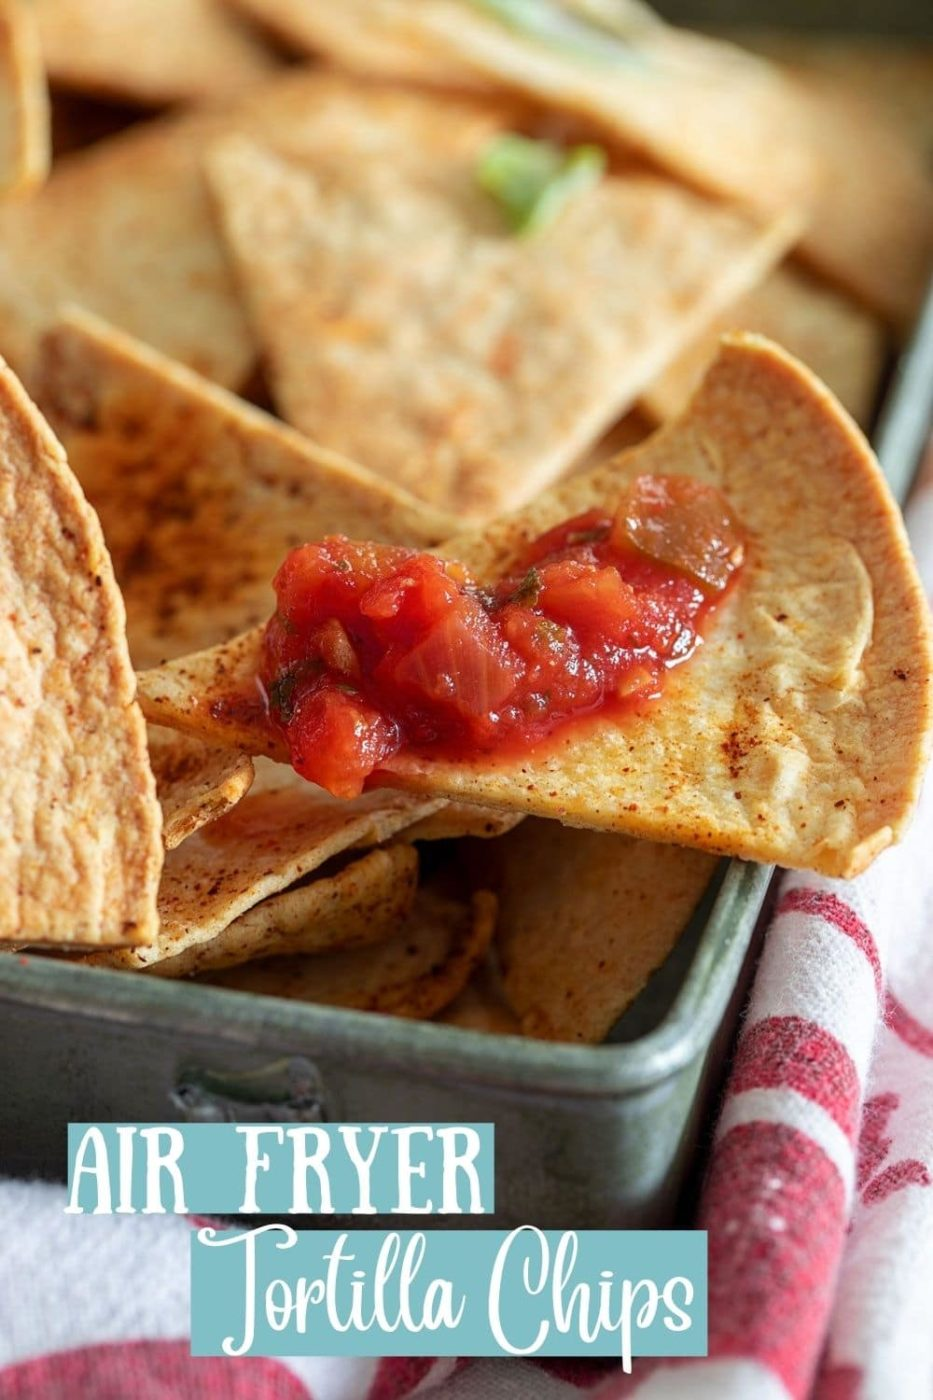 side view of a tortilla chip with salsa sitting on the edge of a grey pan. Grey pan is filled with tortilla chips